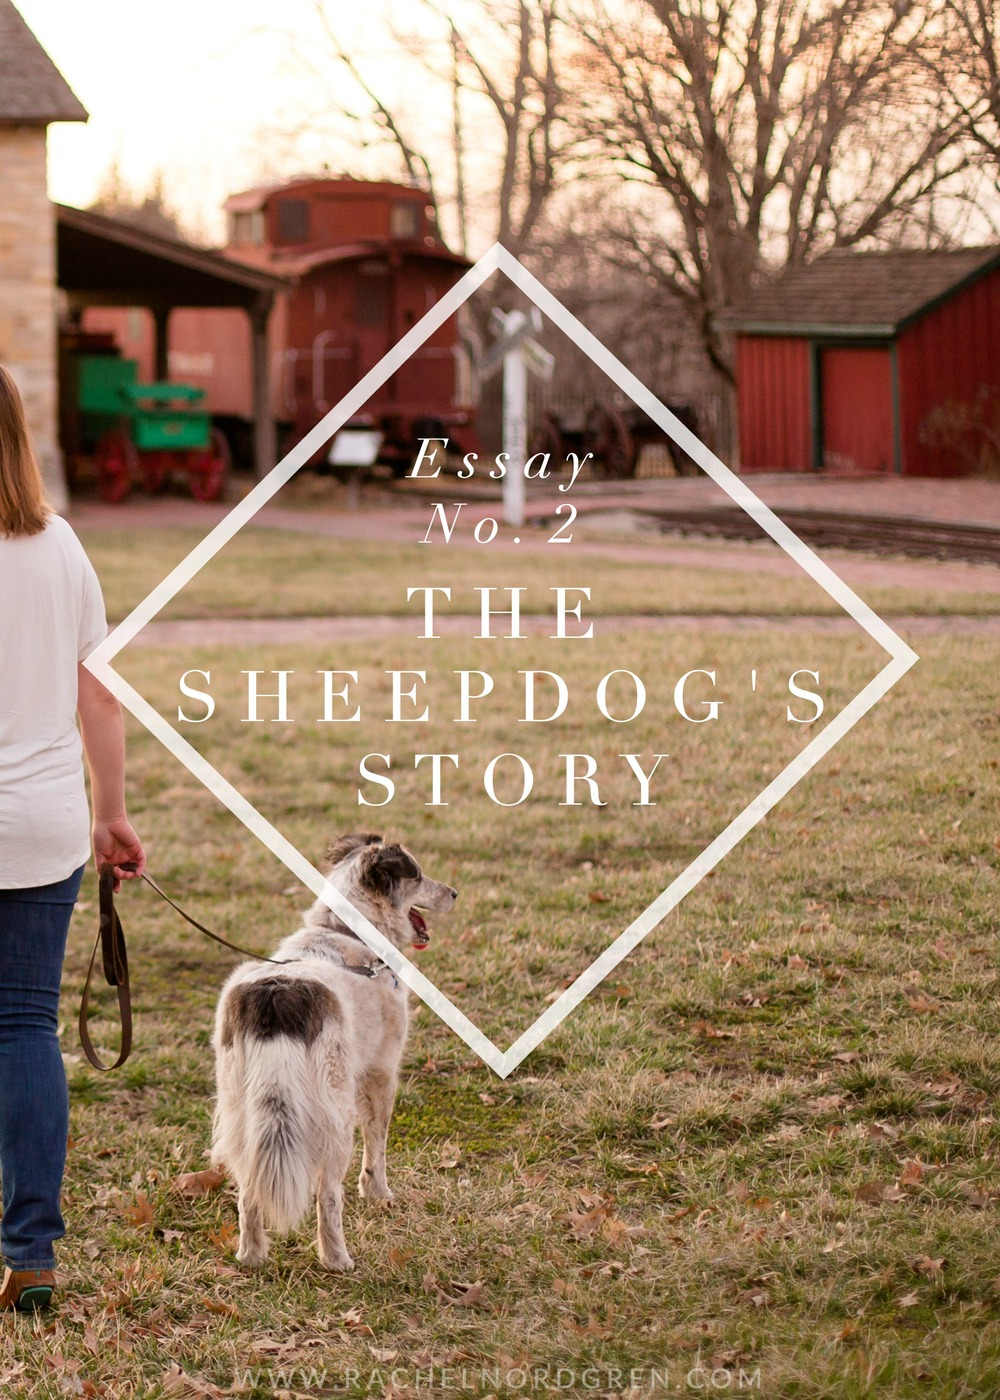 blog rachel nordgren the sheepdog s story an essay from rachel nordgren